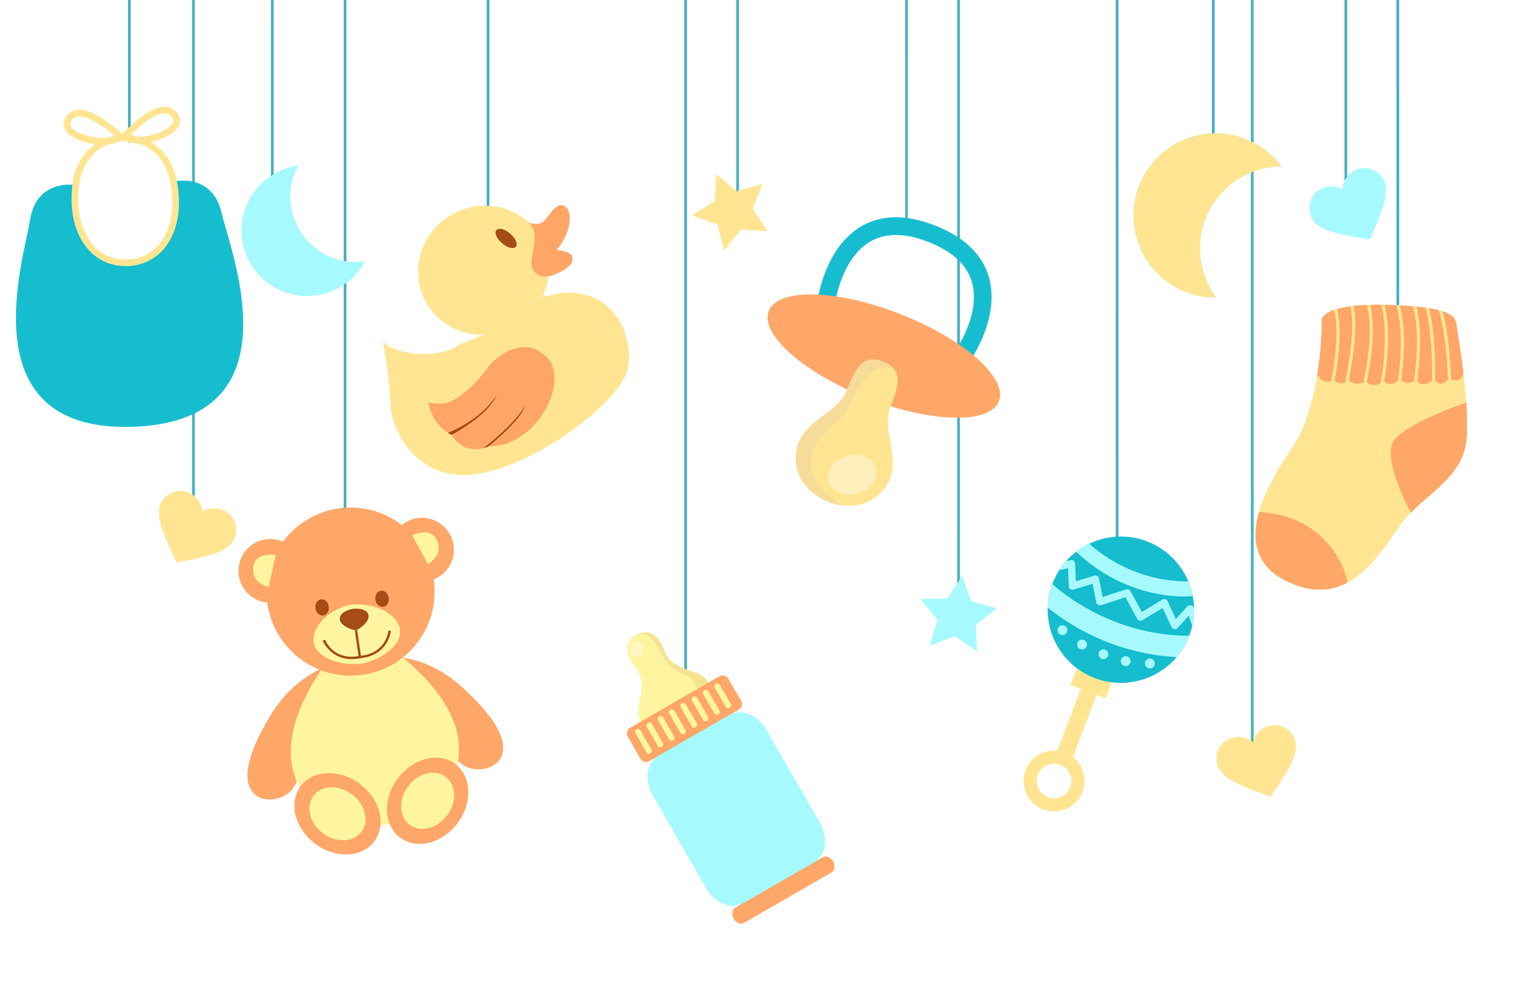 Diaper clipart donut. Infant toy child baby